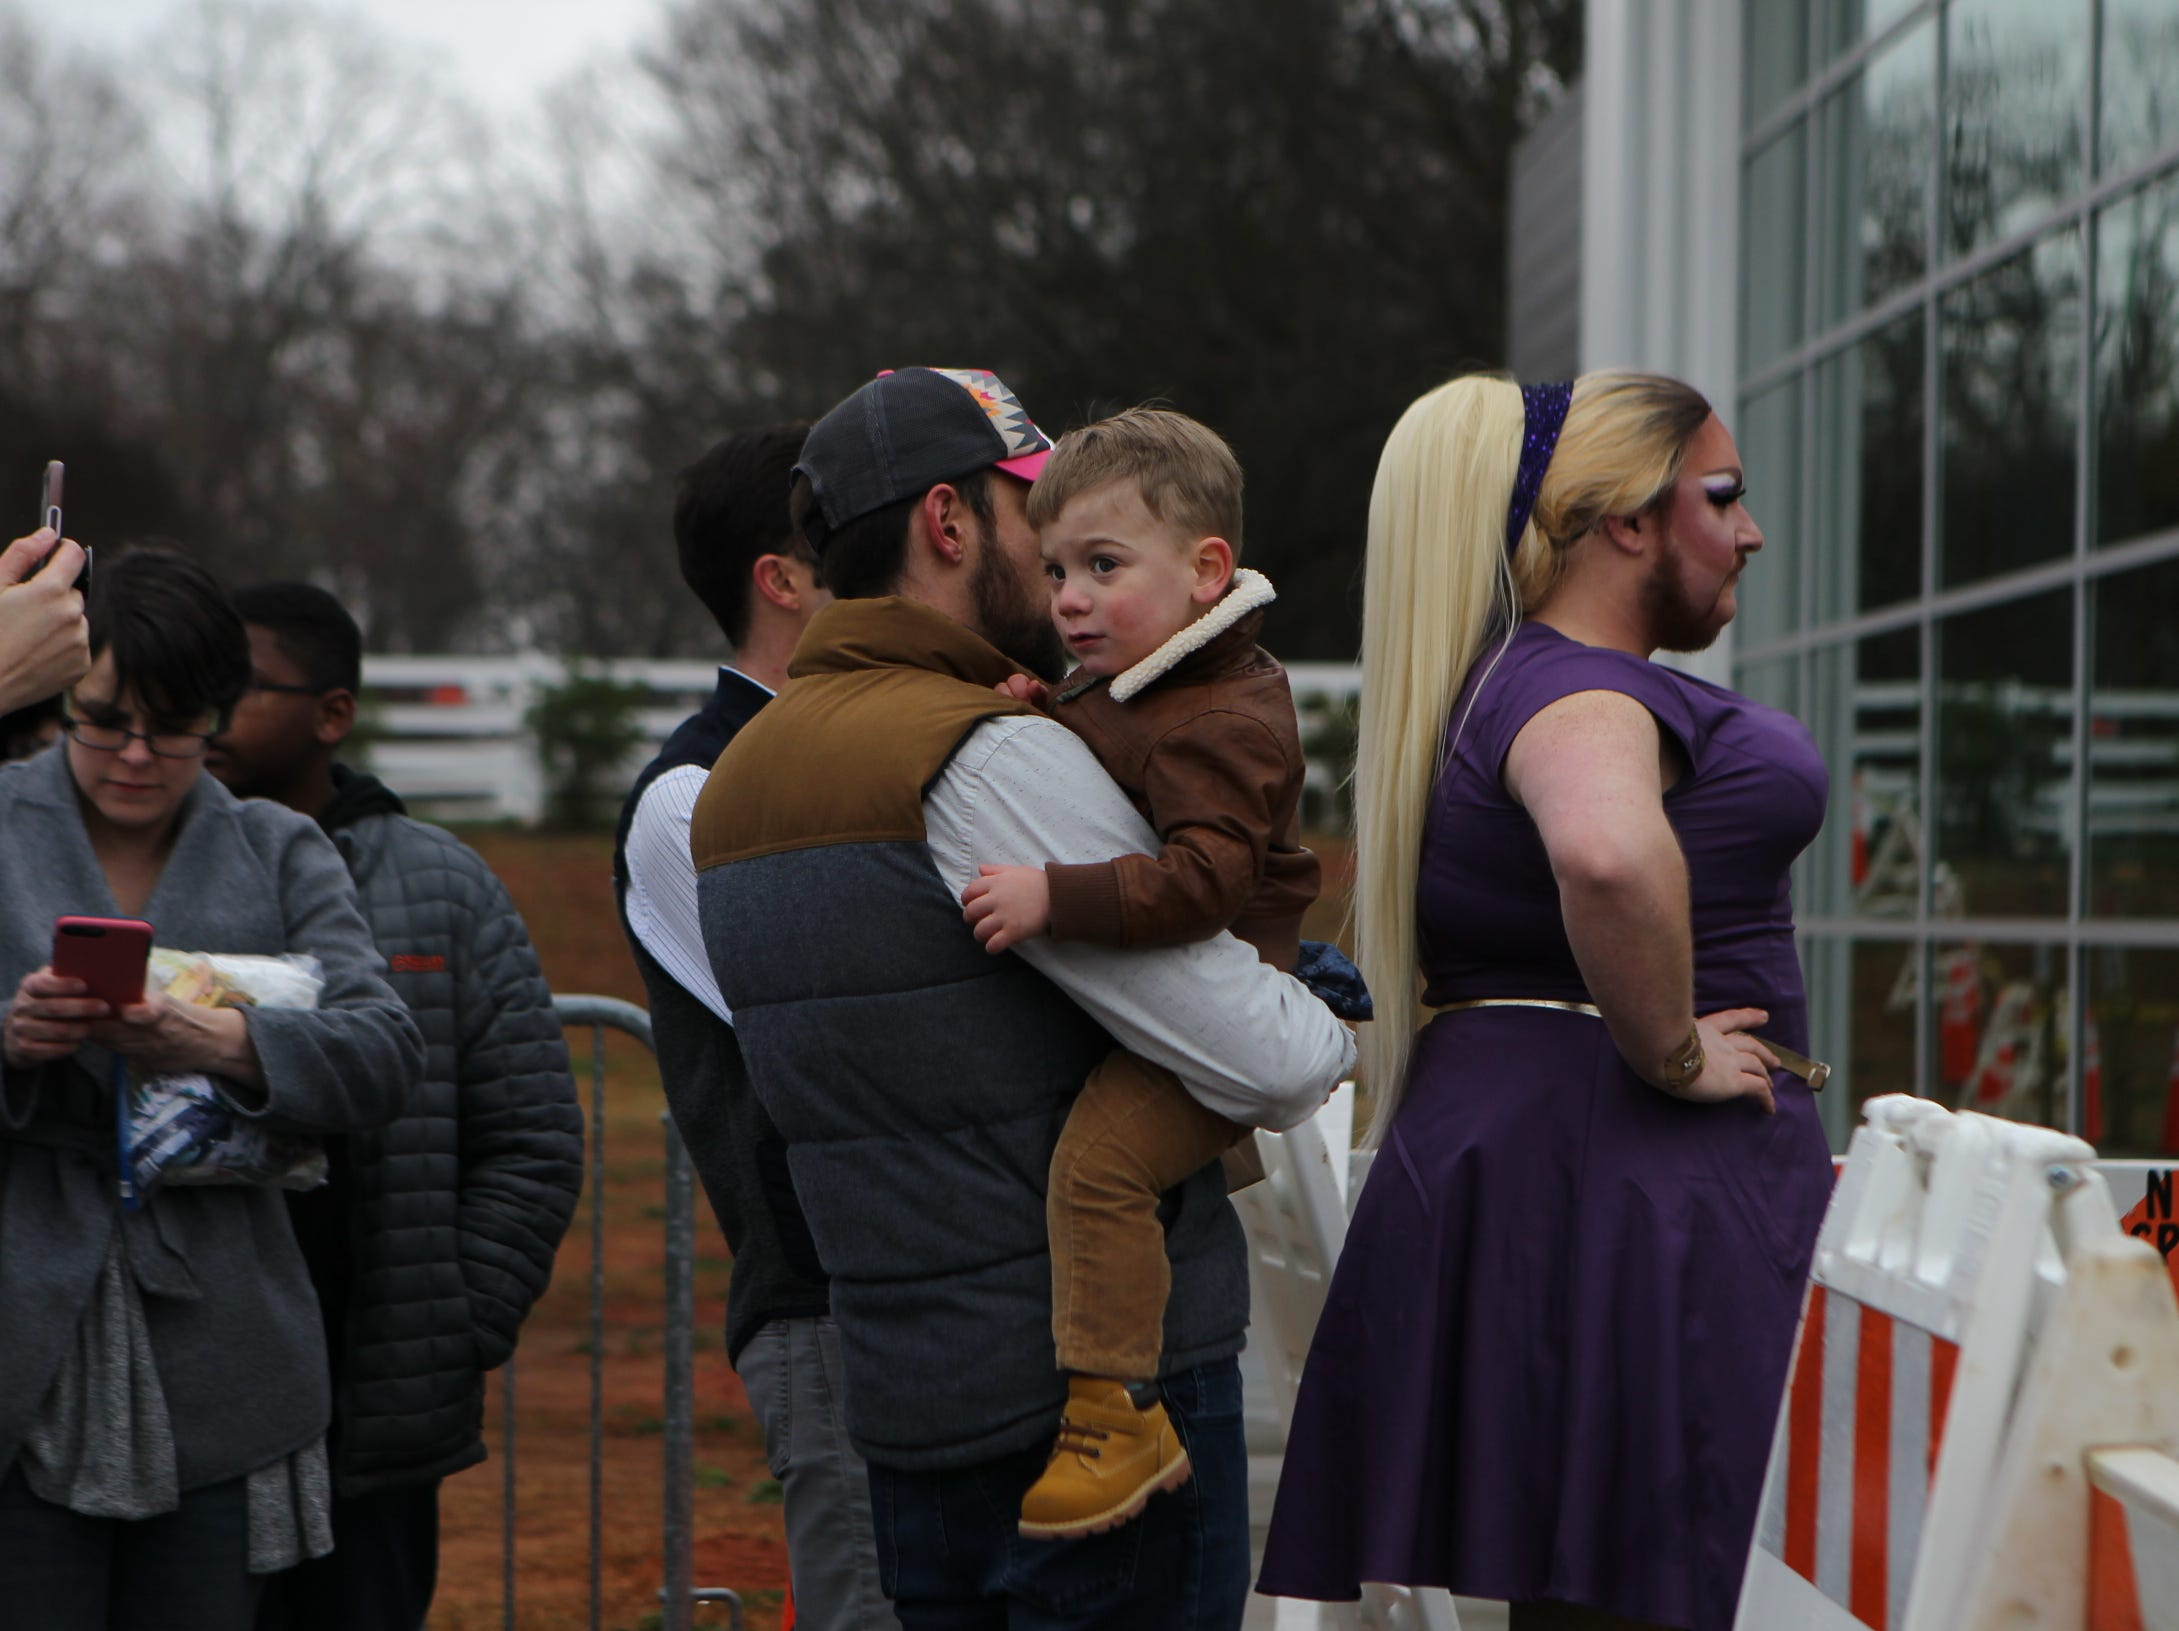 Parents with their children line up outside of Five Forks library for the Drag Queen Story Hour on Sunday, Feb. 17, 2019.